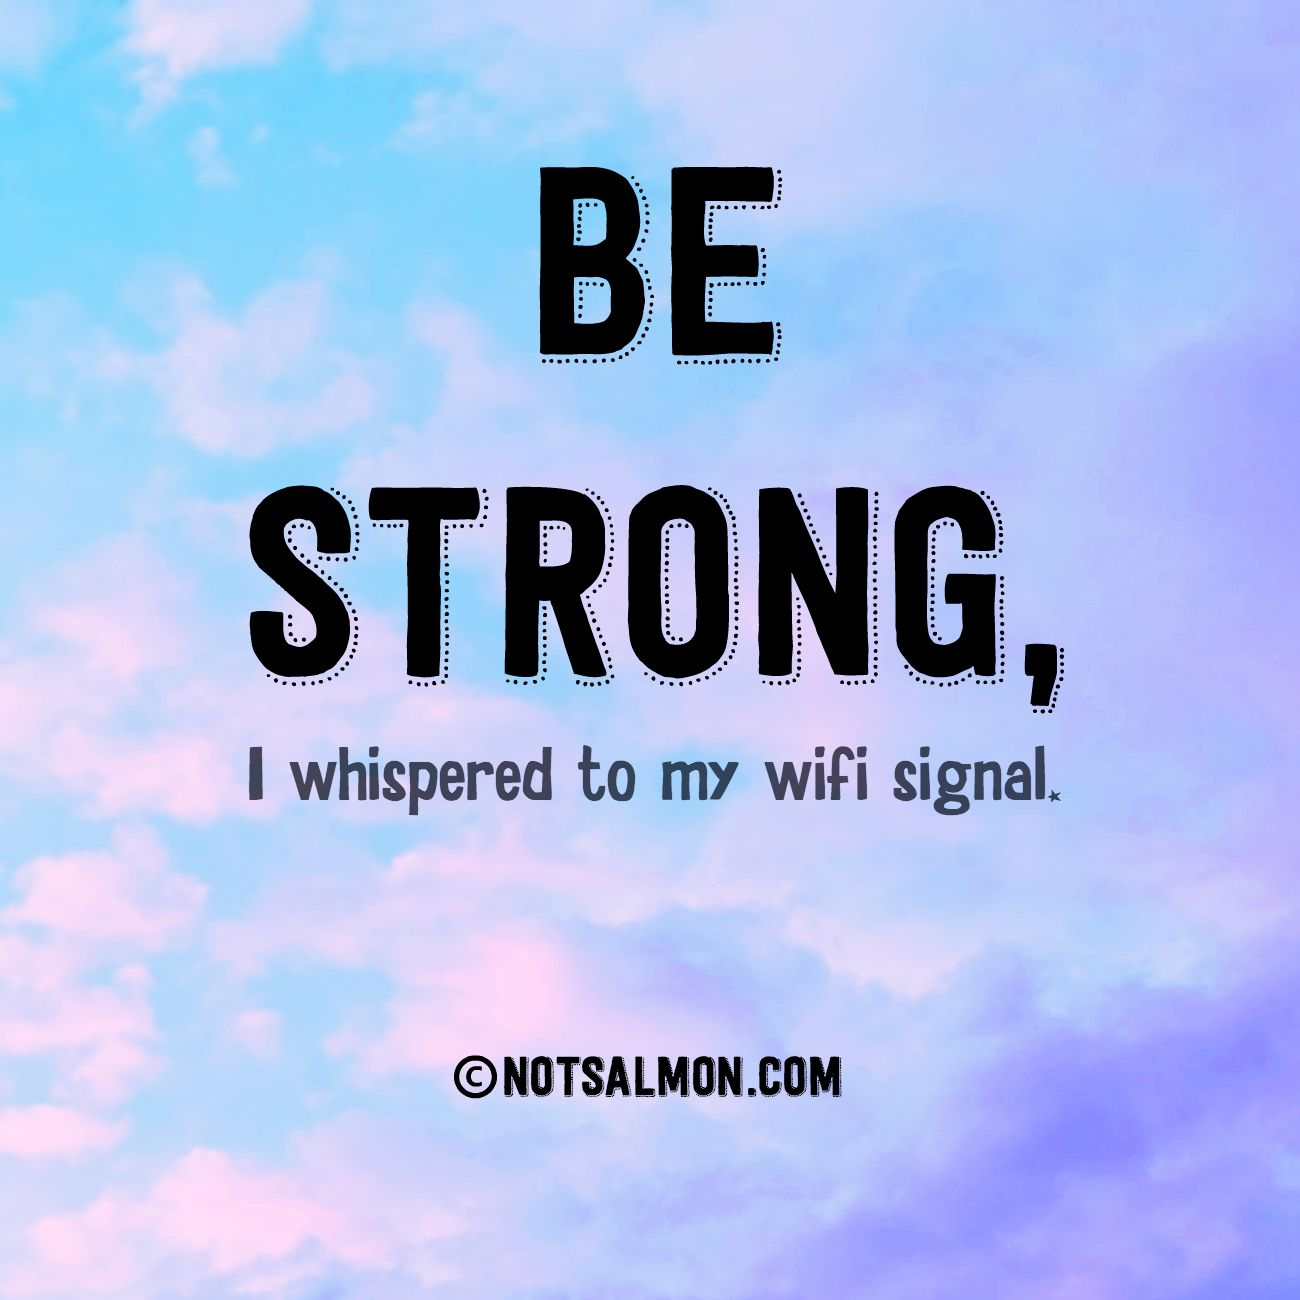 Funny Quotes About Life: Be Strong, I Whispered To My Wifi Signal. @notsalmon